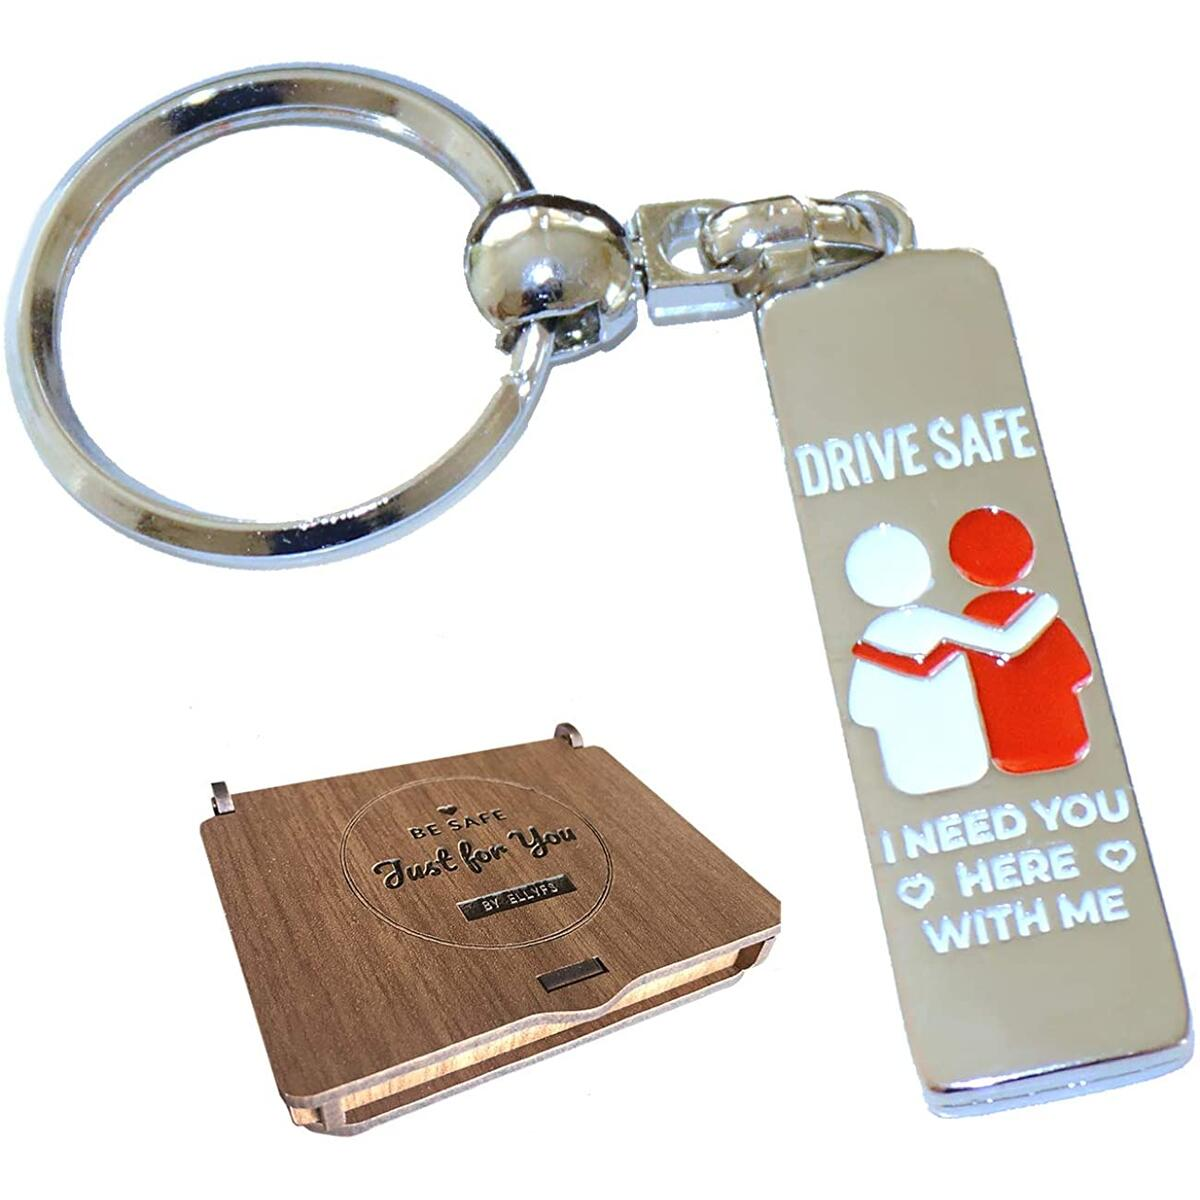 Drive Safe Keychain with Wooden Gift Box for Valentines Day Keychains Boyfriend Brother Gifts Mom Grandpa Dad Father's Day Key Chain I Need You Here With Me Birthday Gift in Love Giftbox by Ellyfs